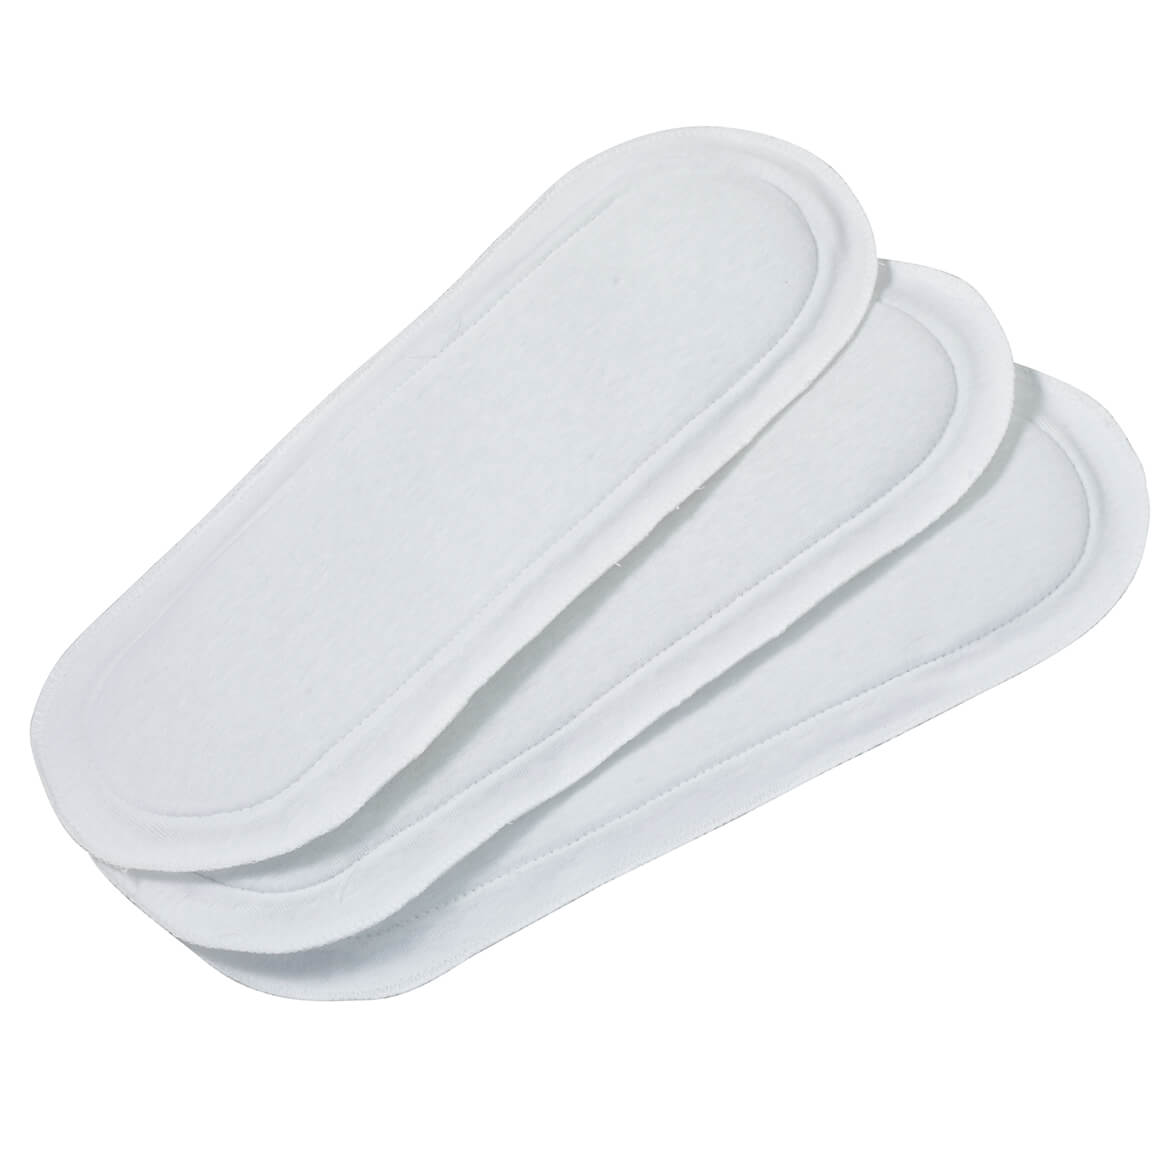 Extra Long Reusable Incontinence Pads, Set of 3-343158